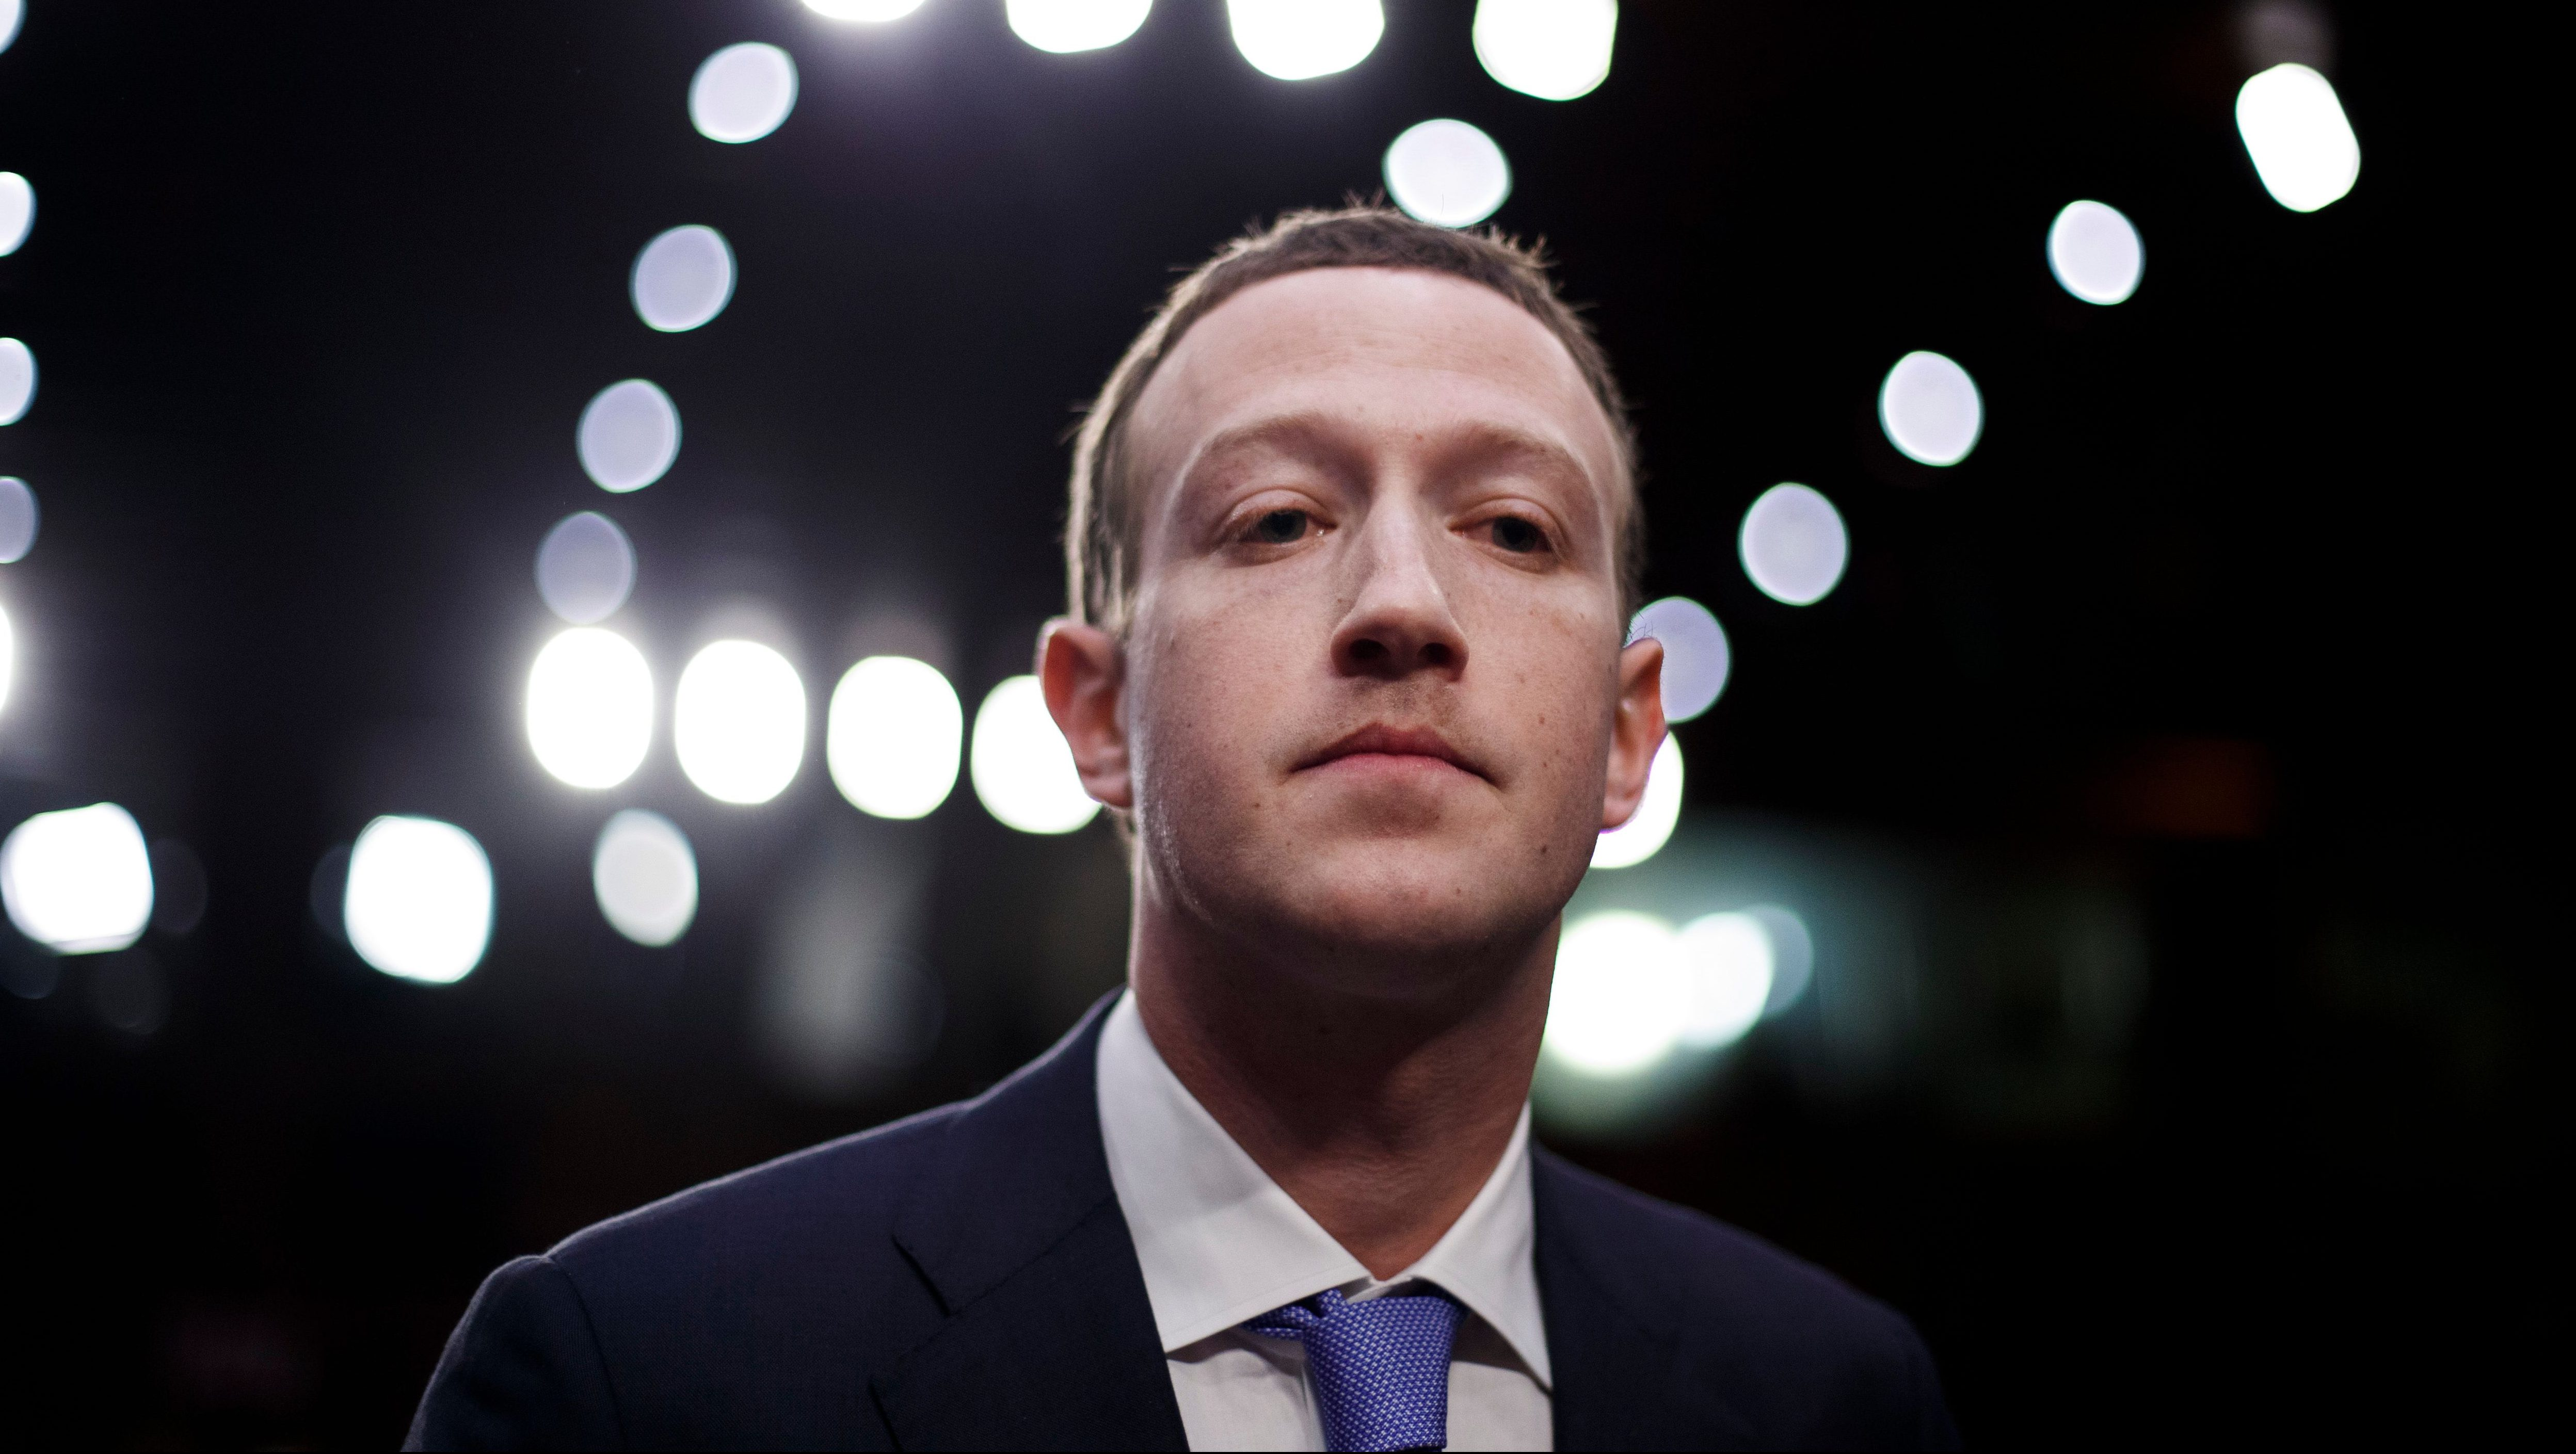 CEO of Facebook Mark Zuckerberg testifies before the Senate Commerce, Science and Transportation Committee and the Senate Judiciary Committee joint hearing on 'Facebook, Social Media Privacy, and the Use and Abuse of Data' on Capitol Hill in Washington, DC, USA, 10 April 2018. Zuckerberg is testifying before two Congressional hearings this week regarding Facebook allowing third-party applications to collect the data of its users without their permission and for the company's response to Russian interference in the 2016 US presidential election.